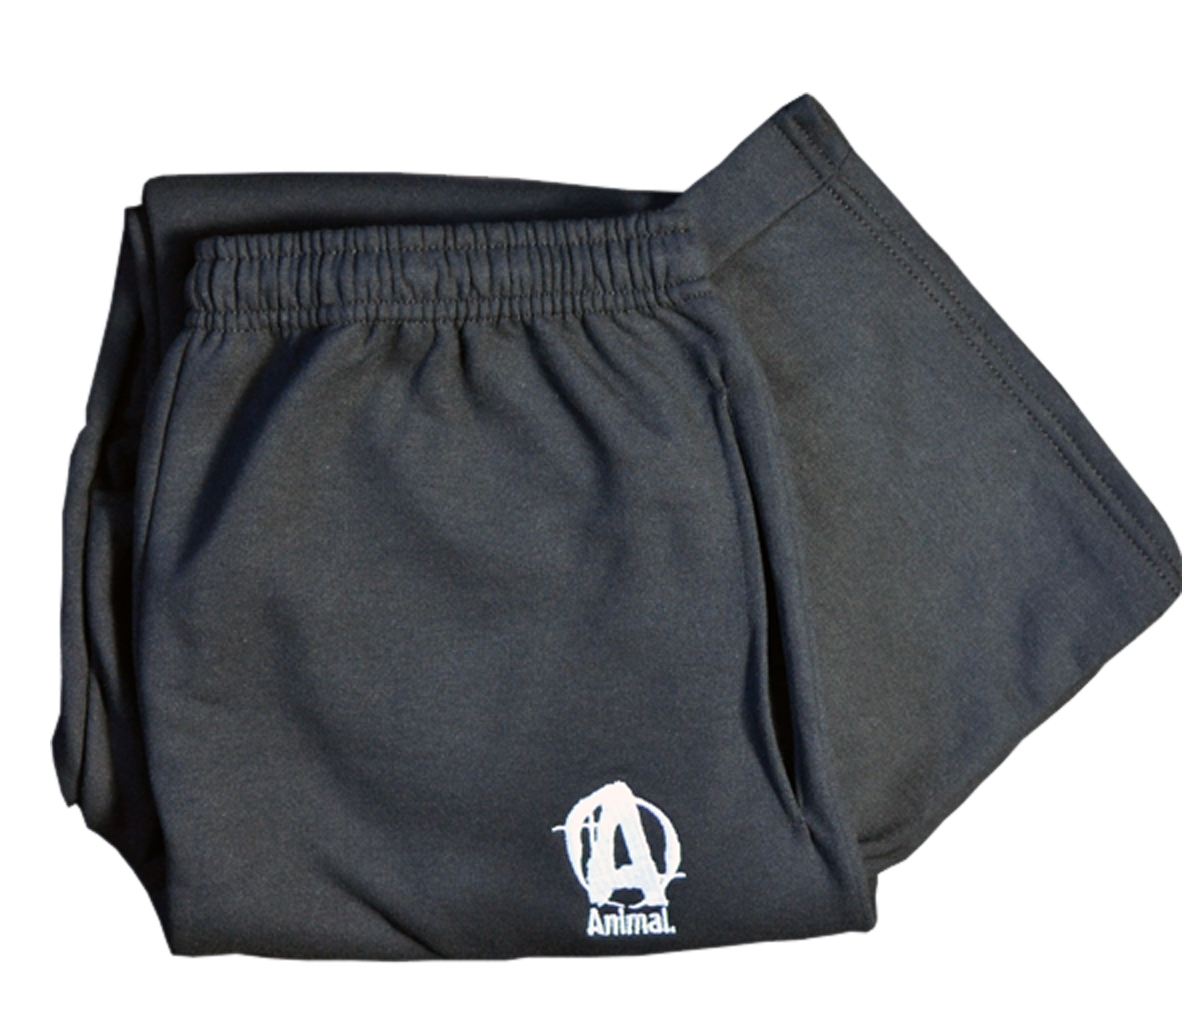 Animal Sweatpants By Universal Nutrition, X-Large